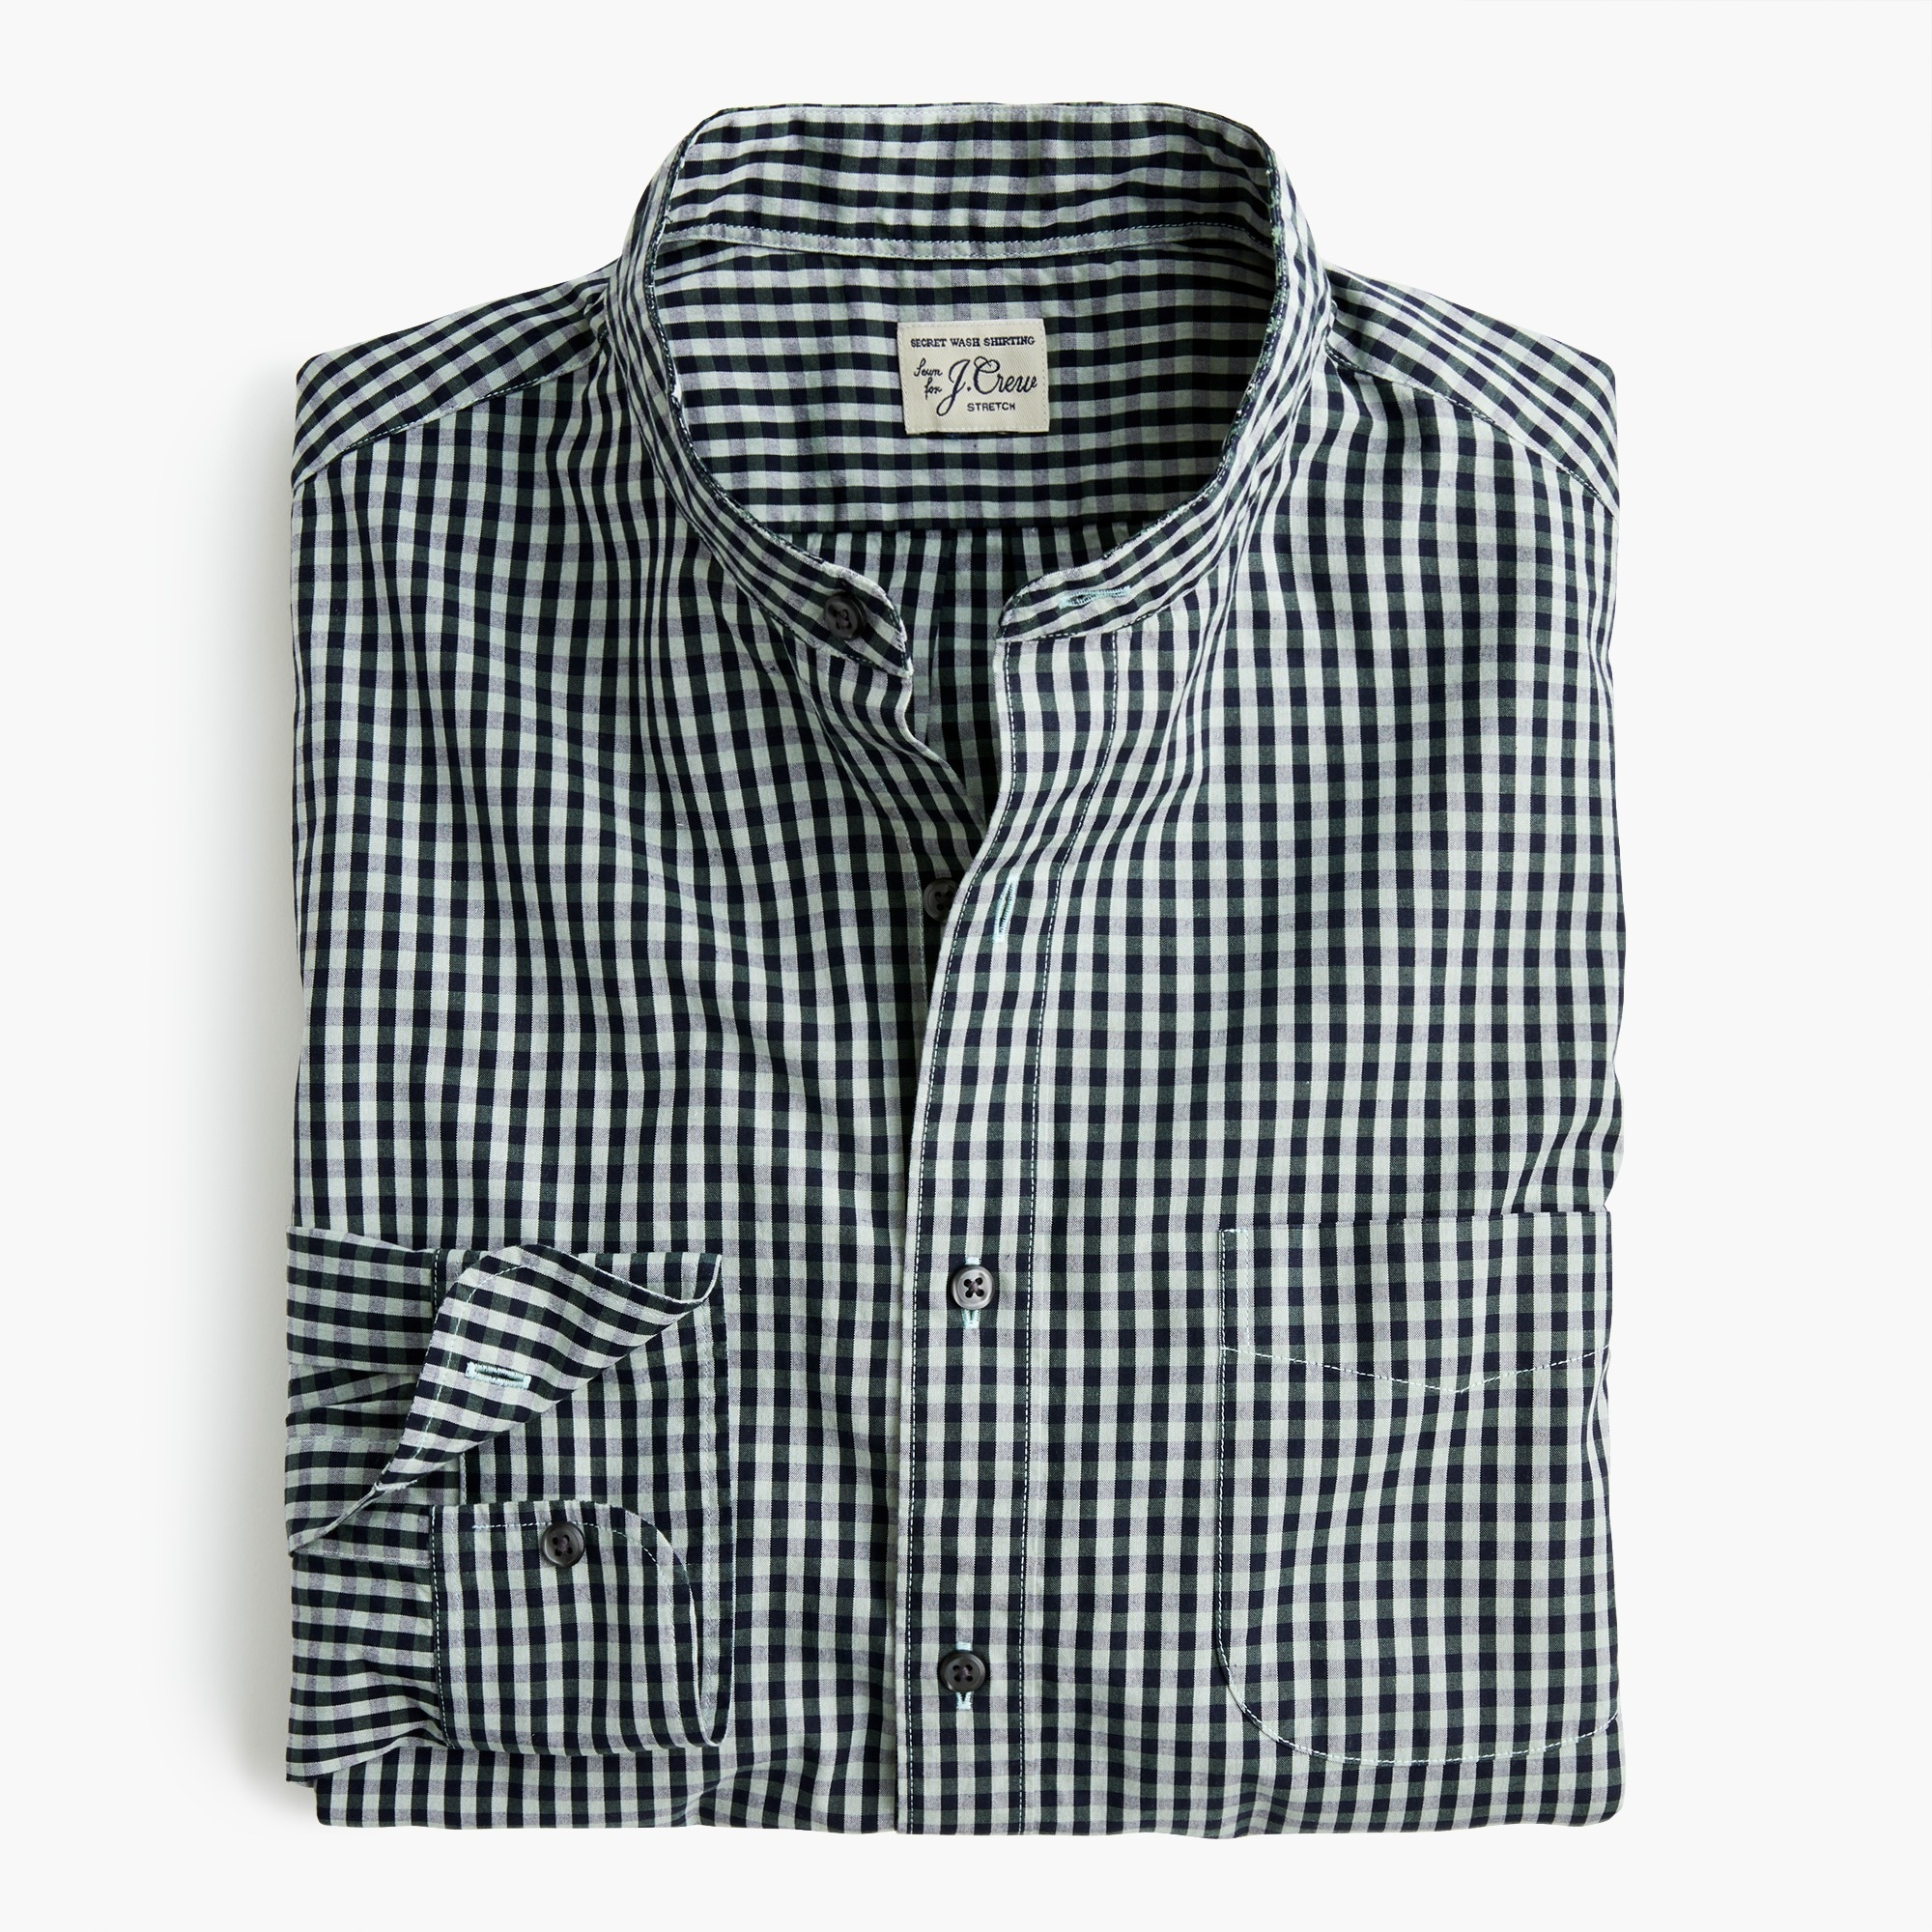 mens Slim stretch Secret Wash band-collar shirt in brown-and-navy gingham